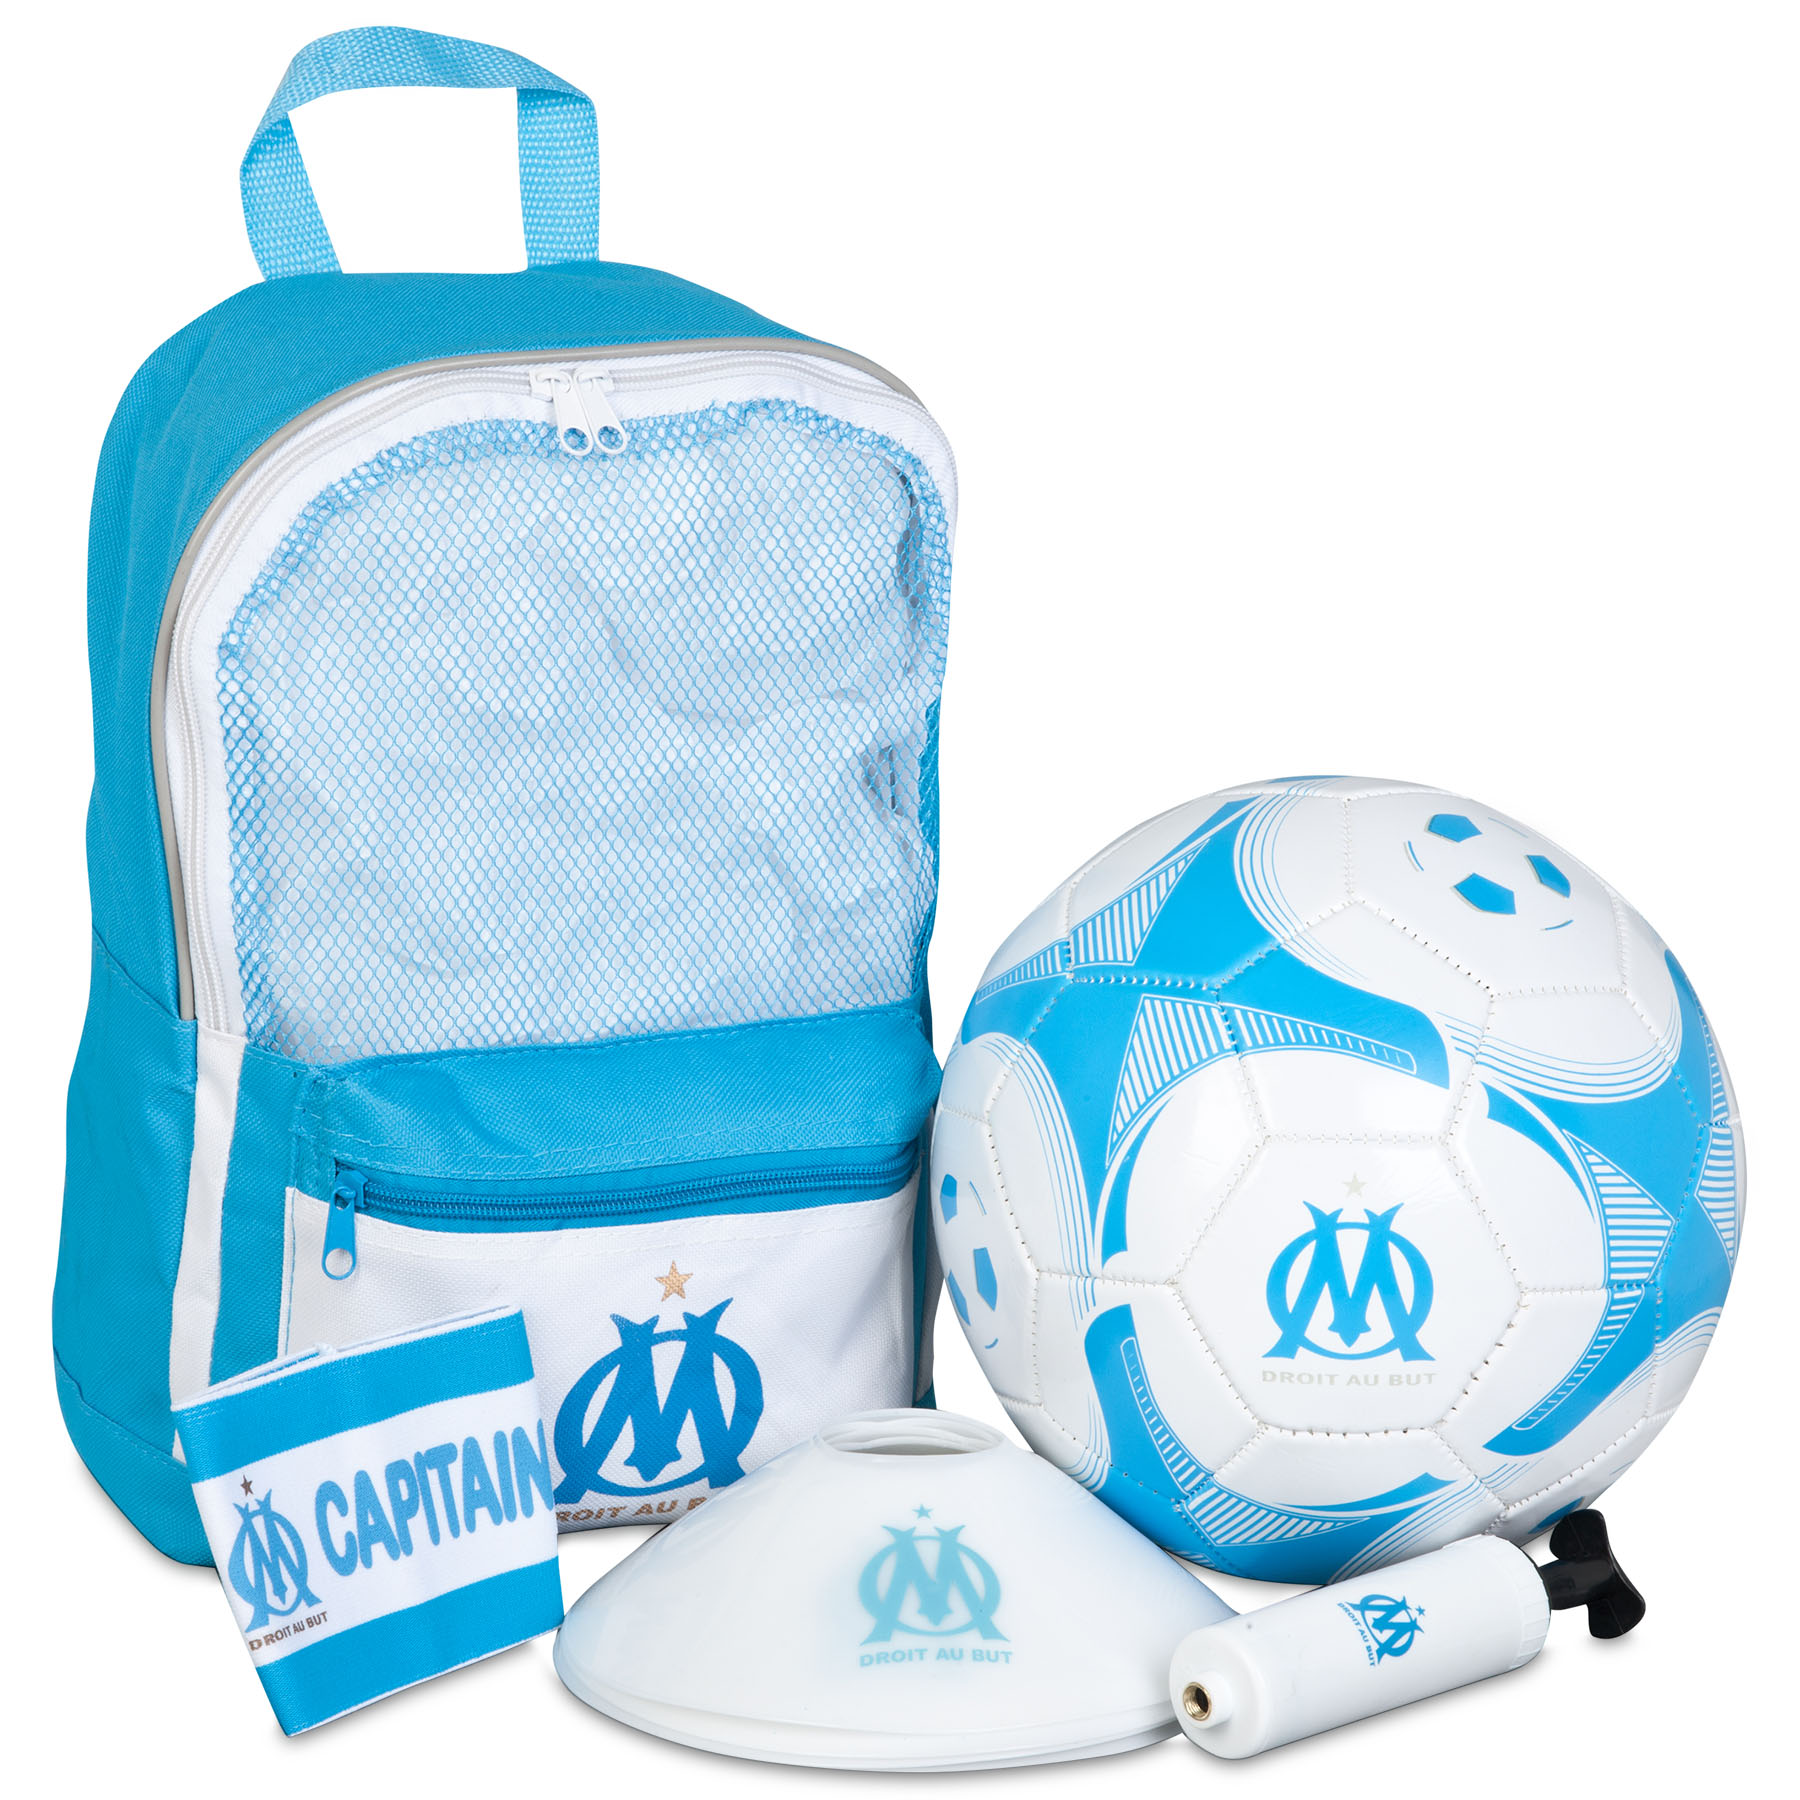 Olympique de Marseille Football Kit Bag - Blue